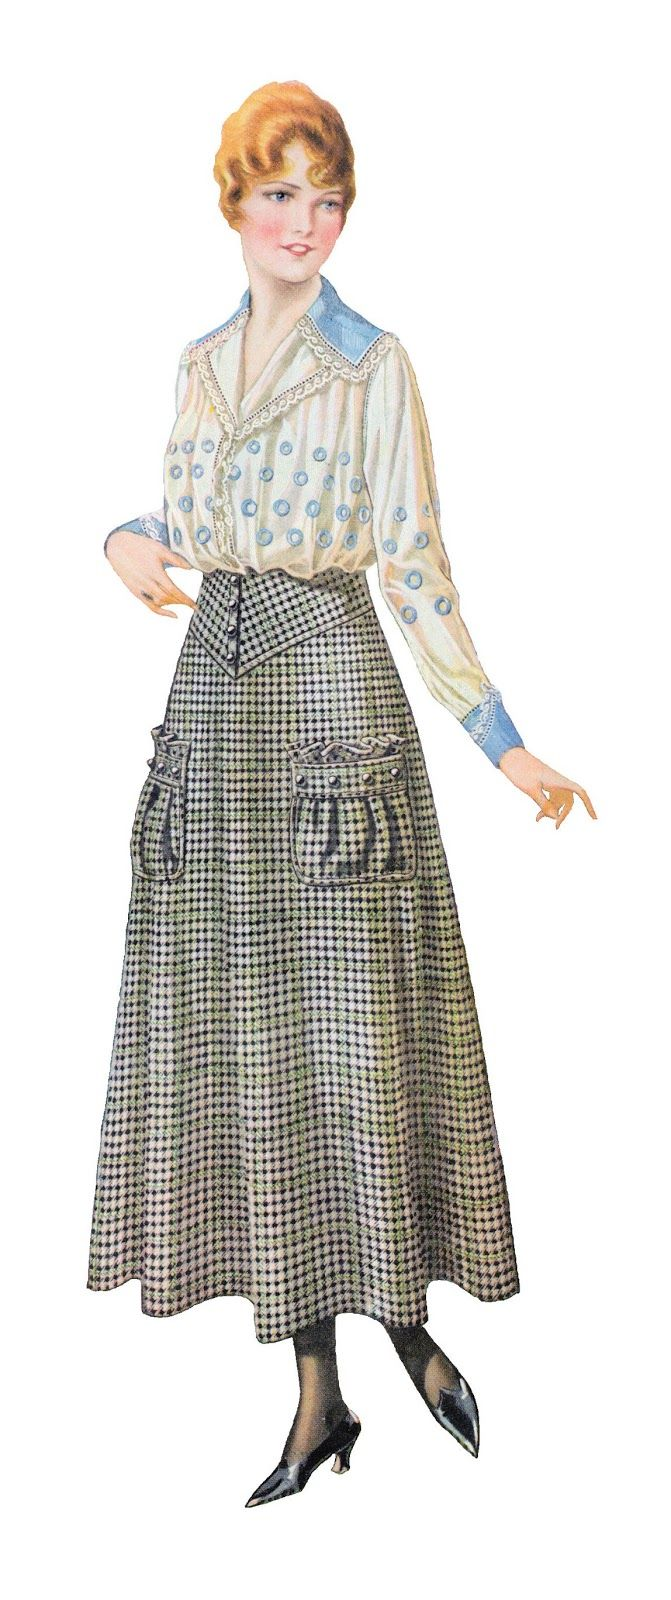 Antique Images: Free Vintage Fashion Graphic: 1915, Vintage Skirt and Blouse Fashion